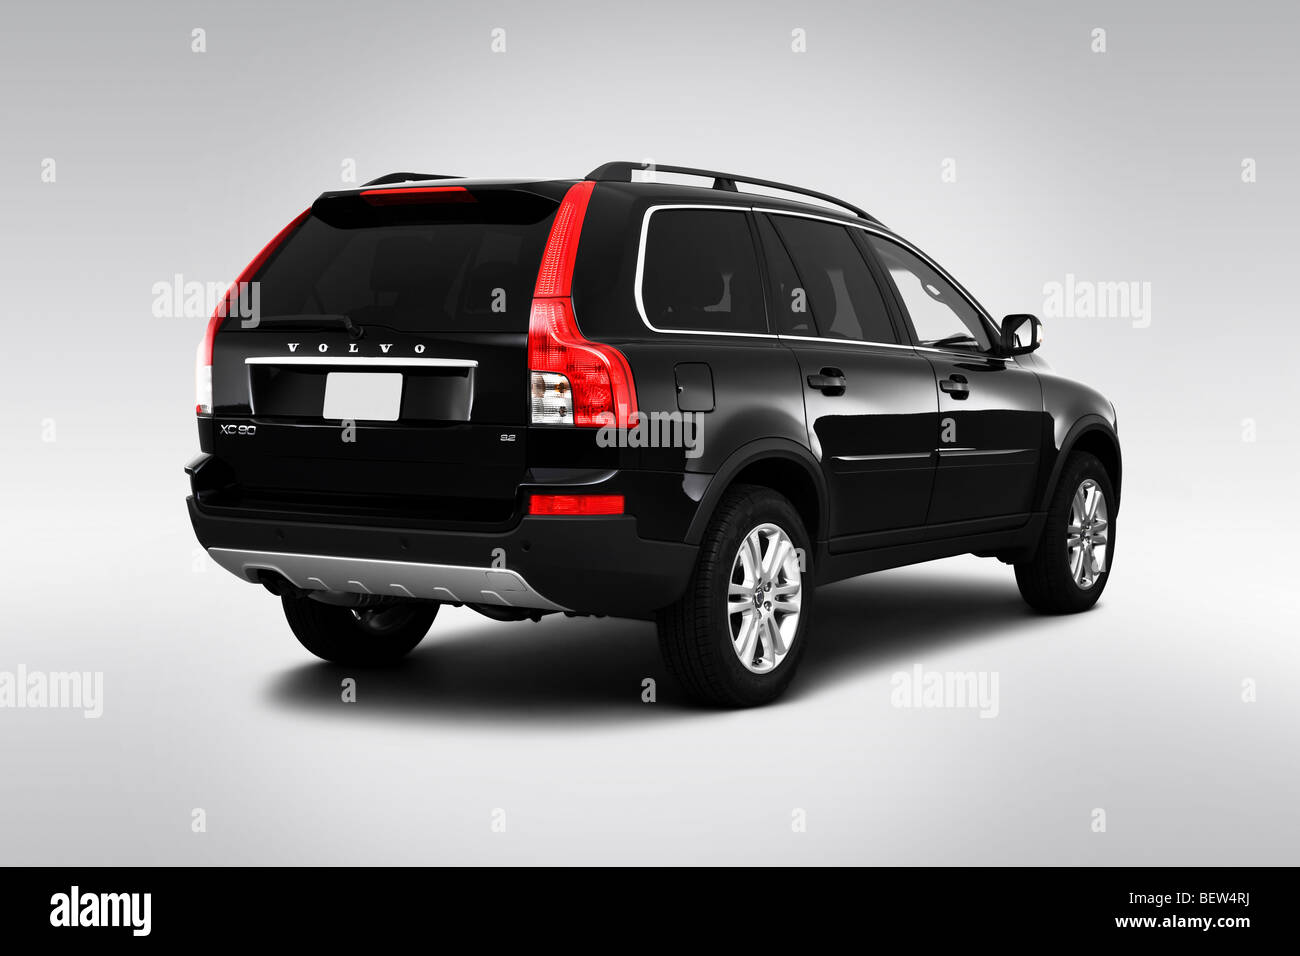 2010 Volvo XC90 3 2 in Black - Rear angle view Stock Photo